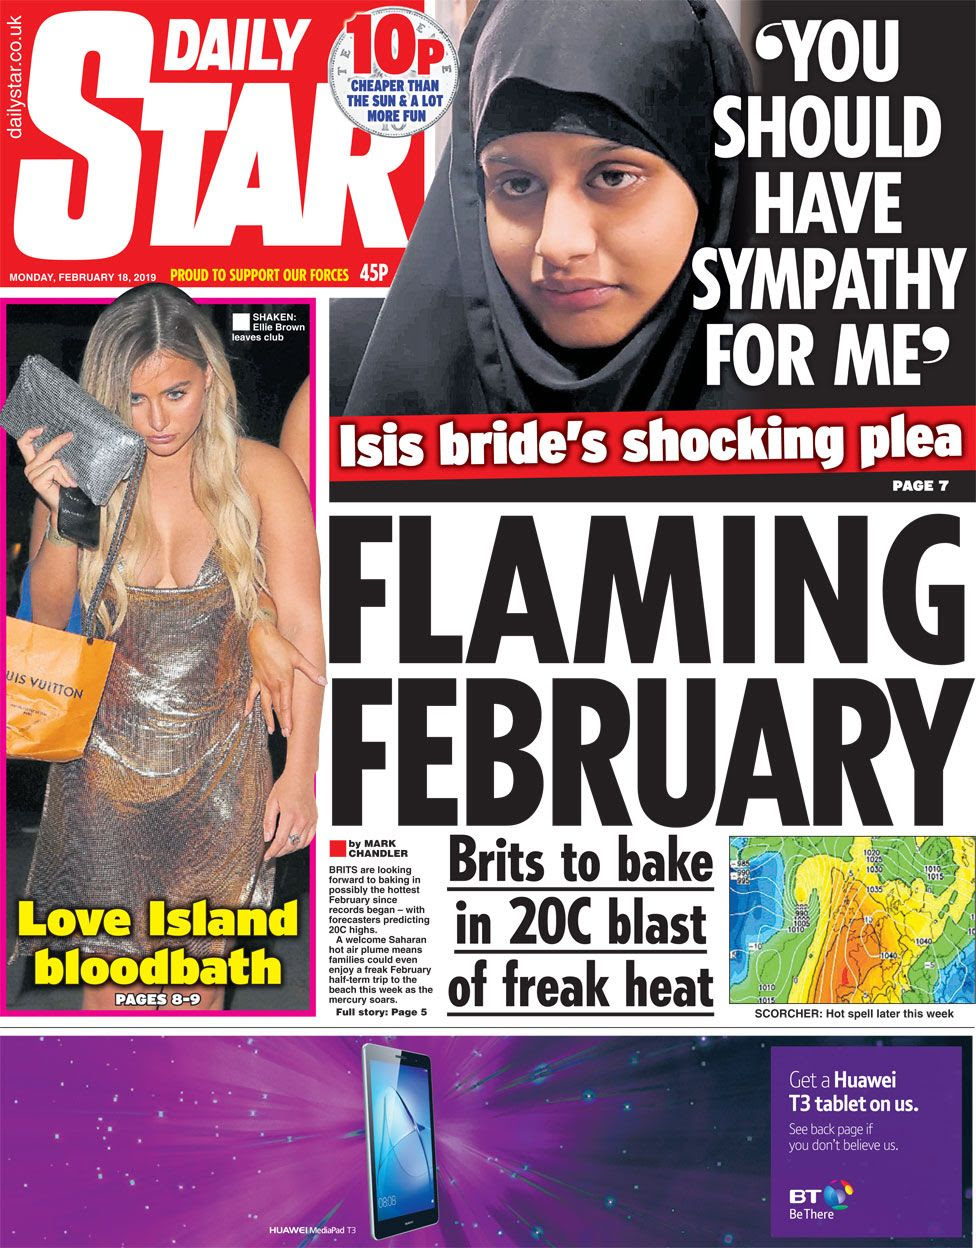 The Daily Star front page on 18 February